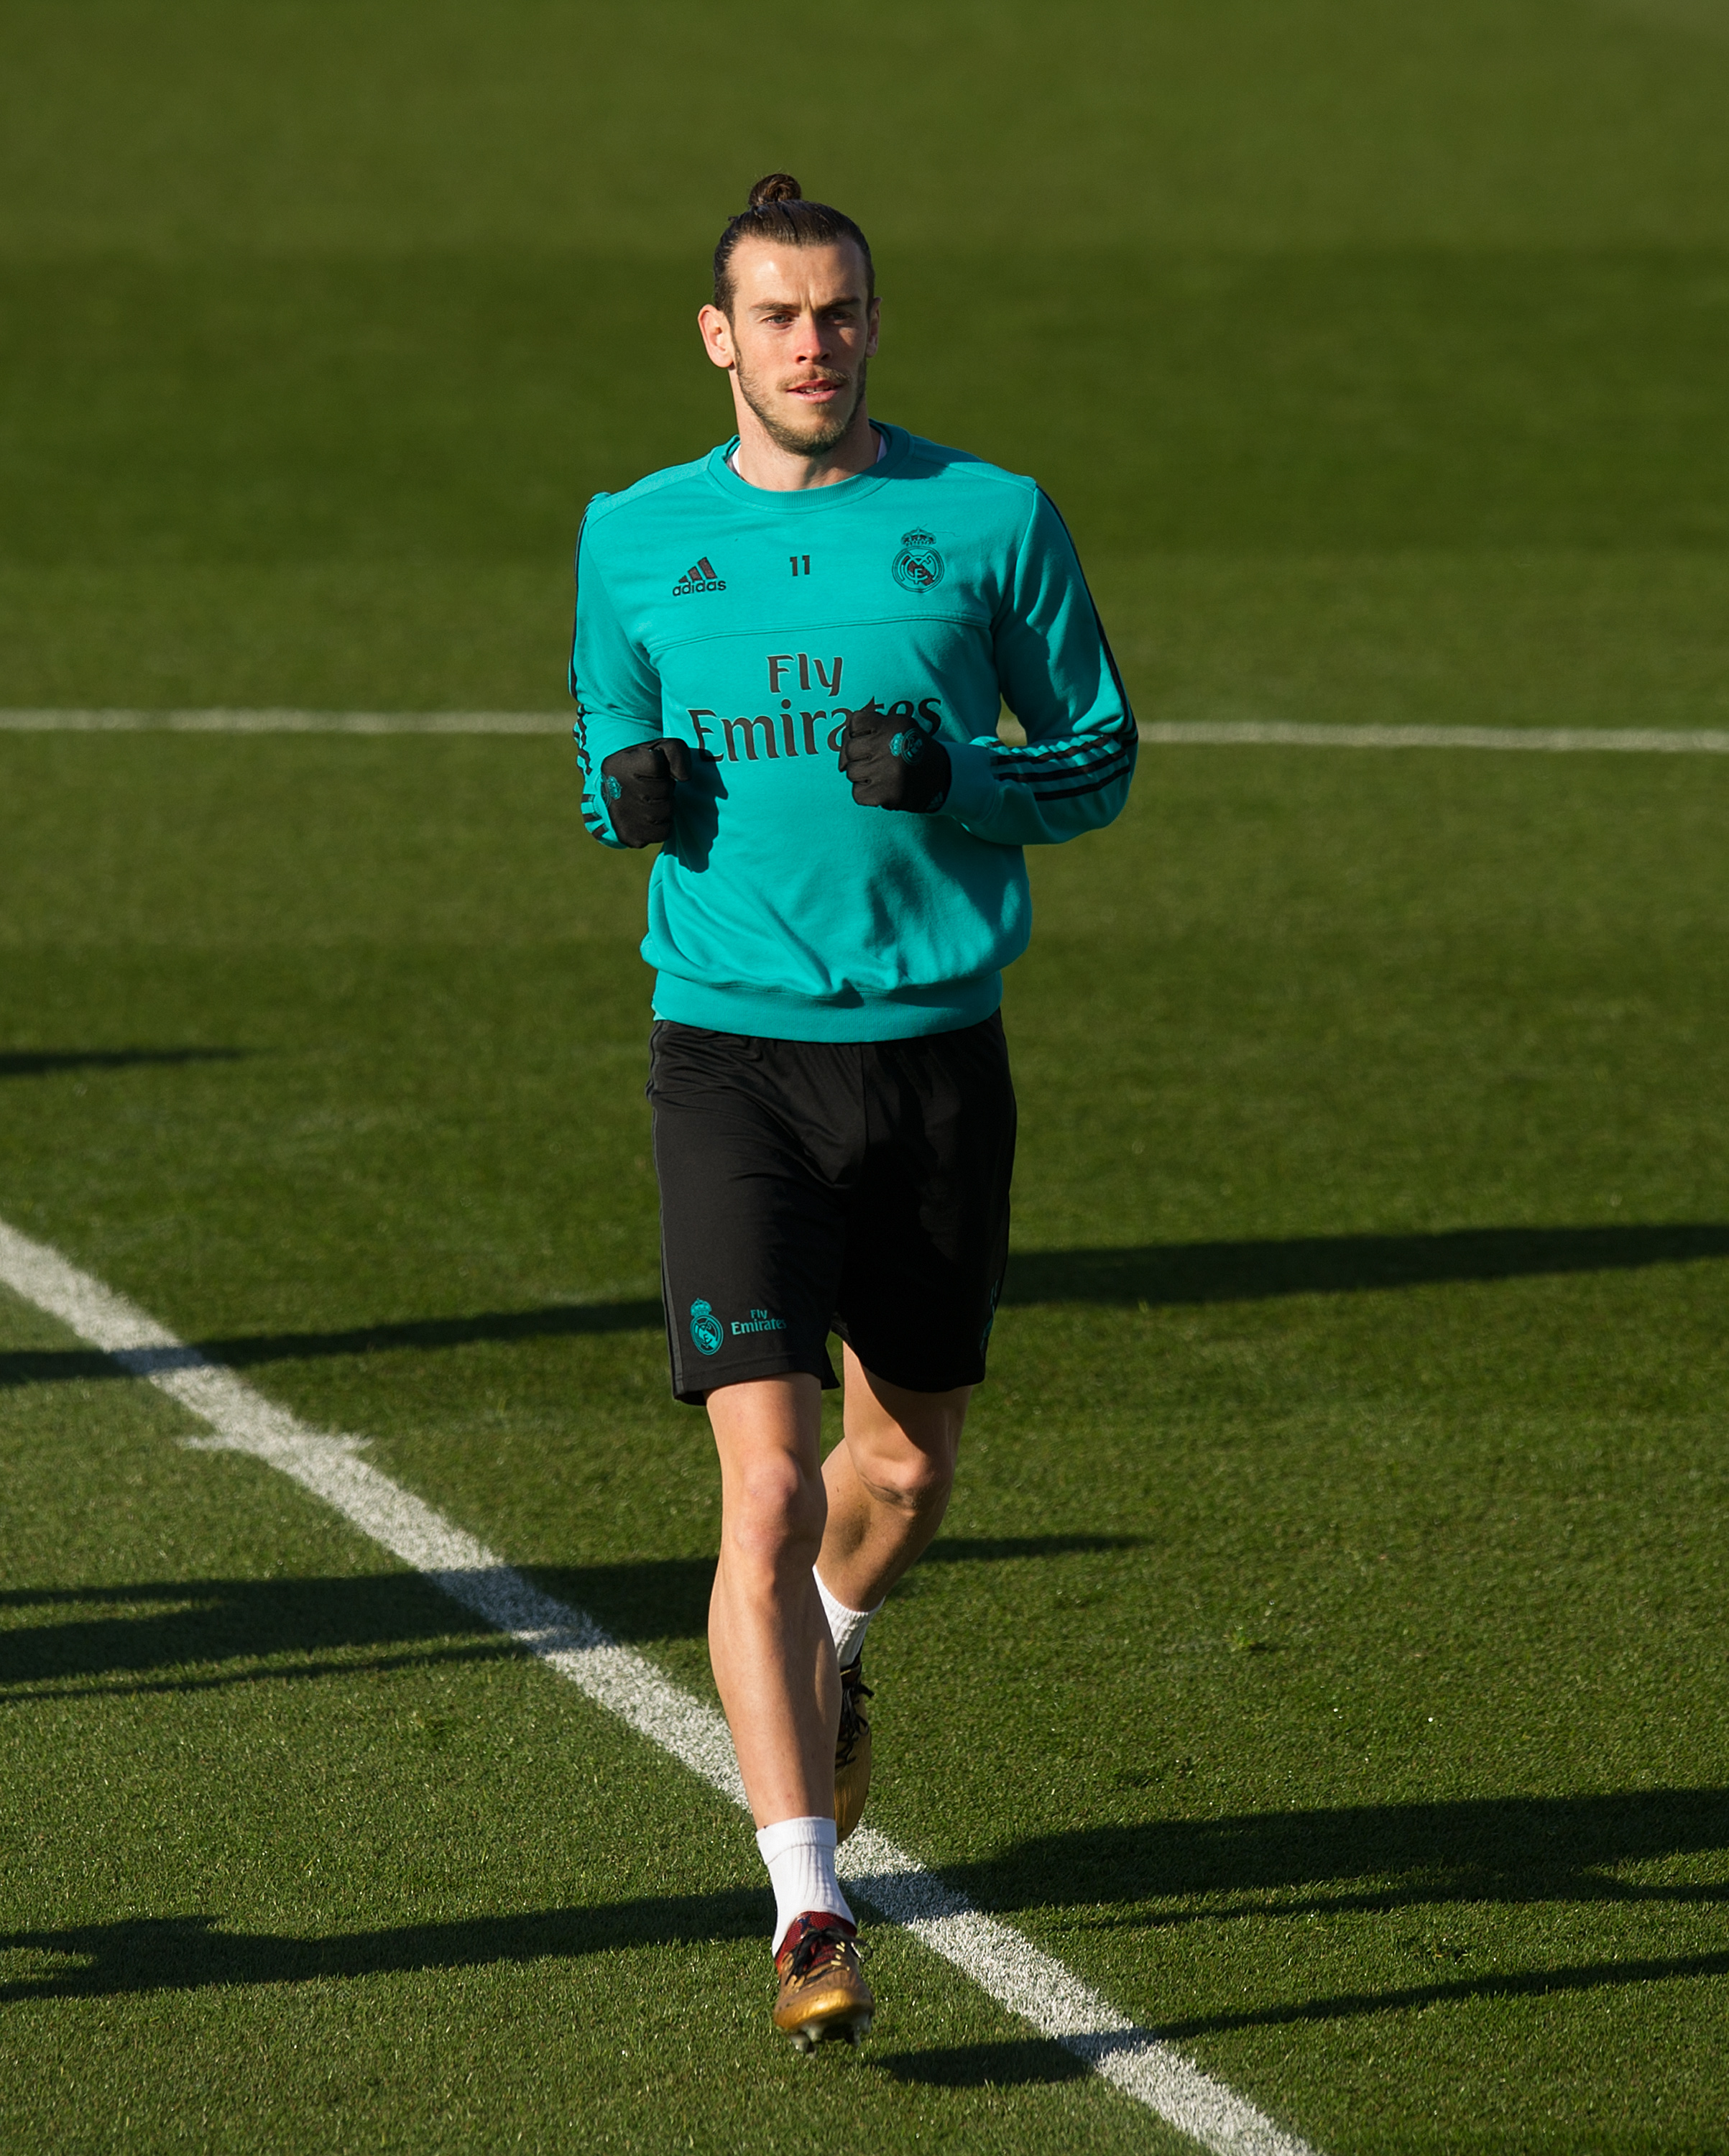 Real Madrid Team News Injuries Suspensions And Line Up: Managing Madrid, A Real Madrid Community